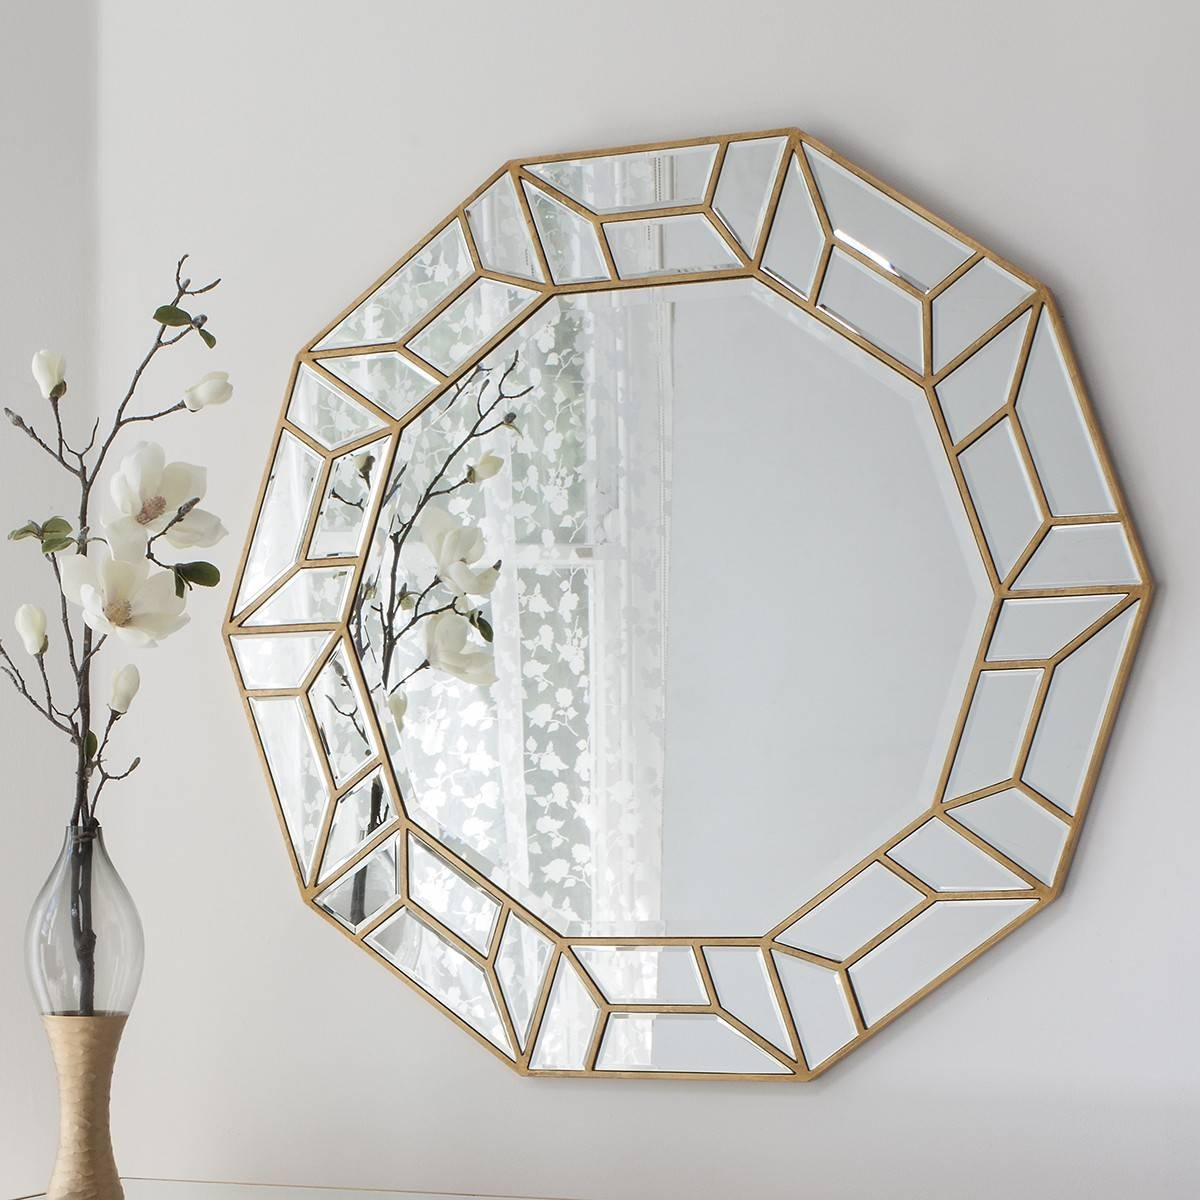 D'or Art Deco Mirror From £349 - Luxury Wall Mirrors | Ashden Road in Art Deco Style Mirrors (Image 16 of 25)